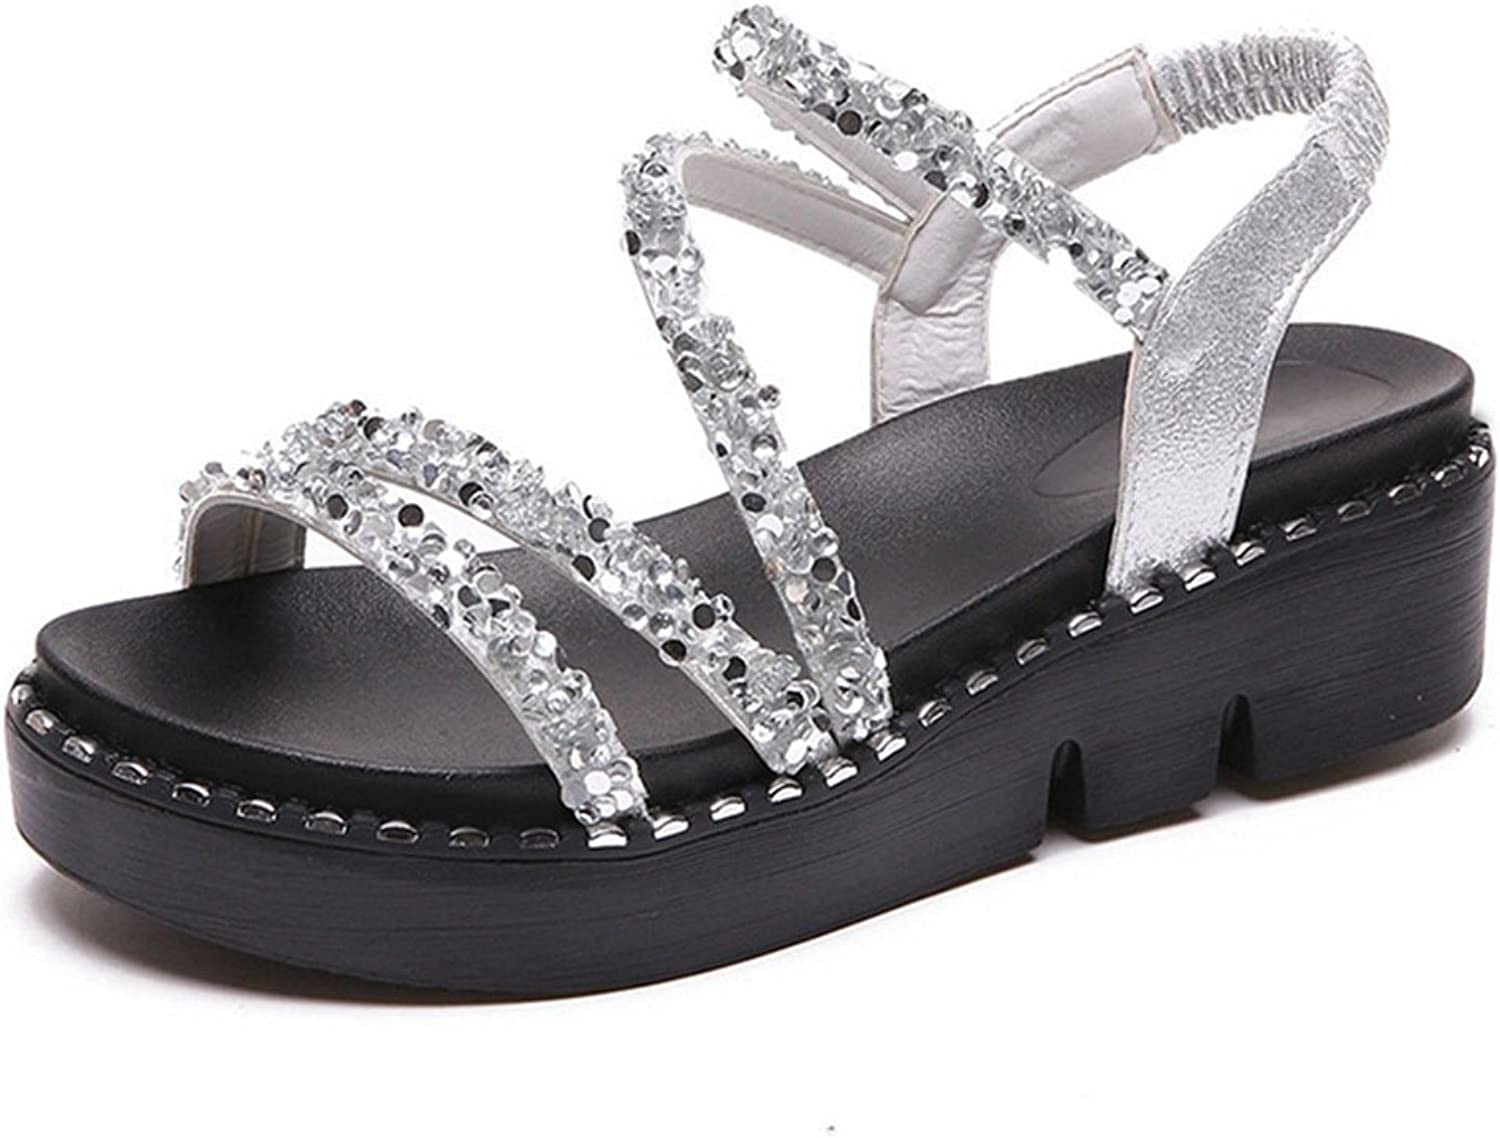 CYBLING Women's Platform Sandals Glitter Open Toe Fashion Ankle Strap Footbed Wedges shoes